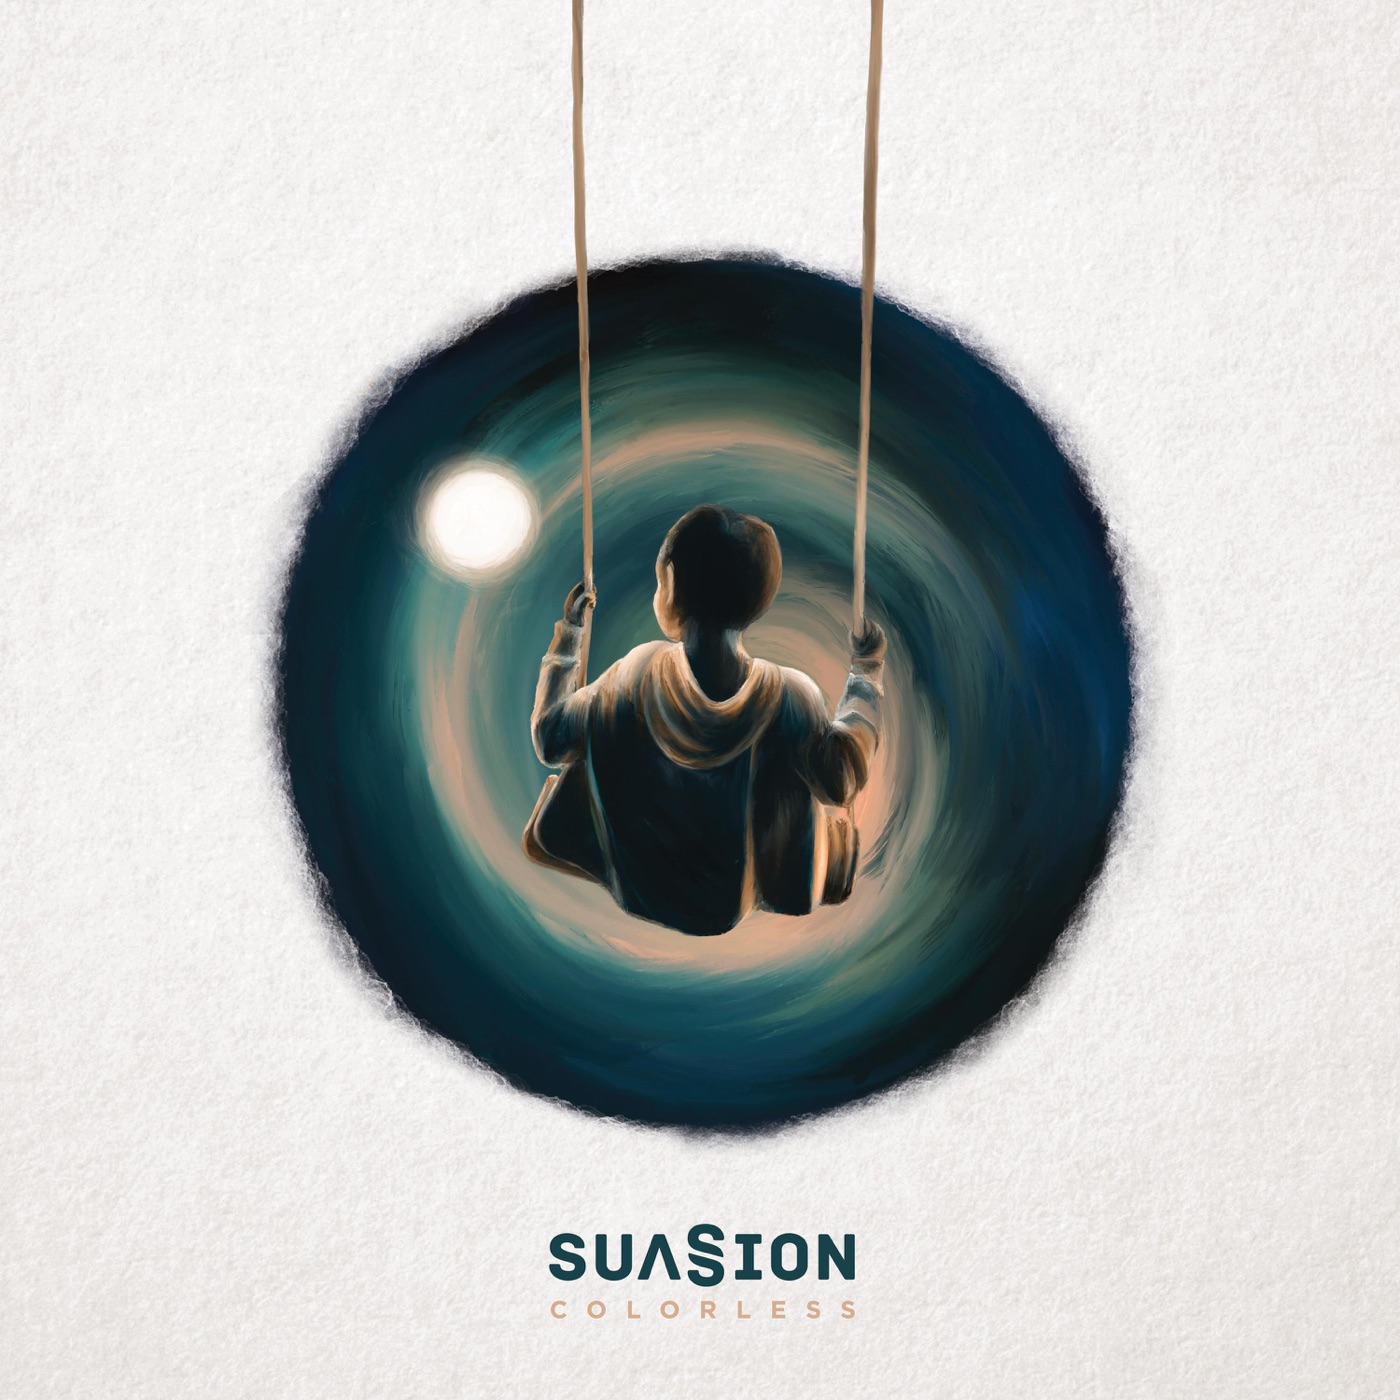 Suasion - Colorless [single] (2019)